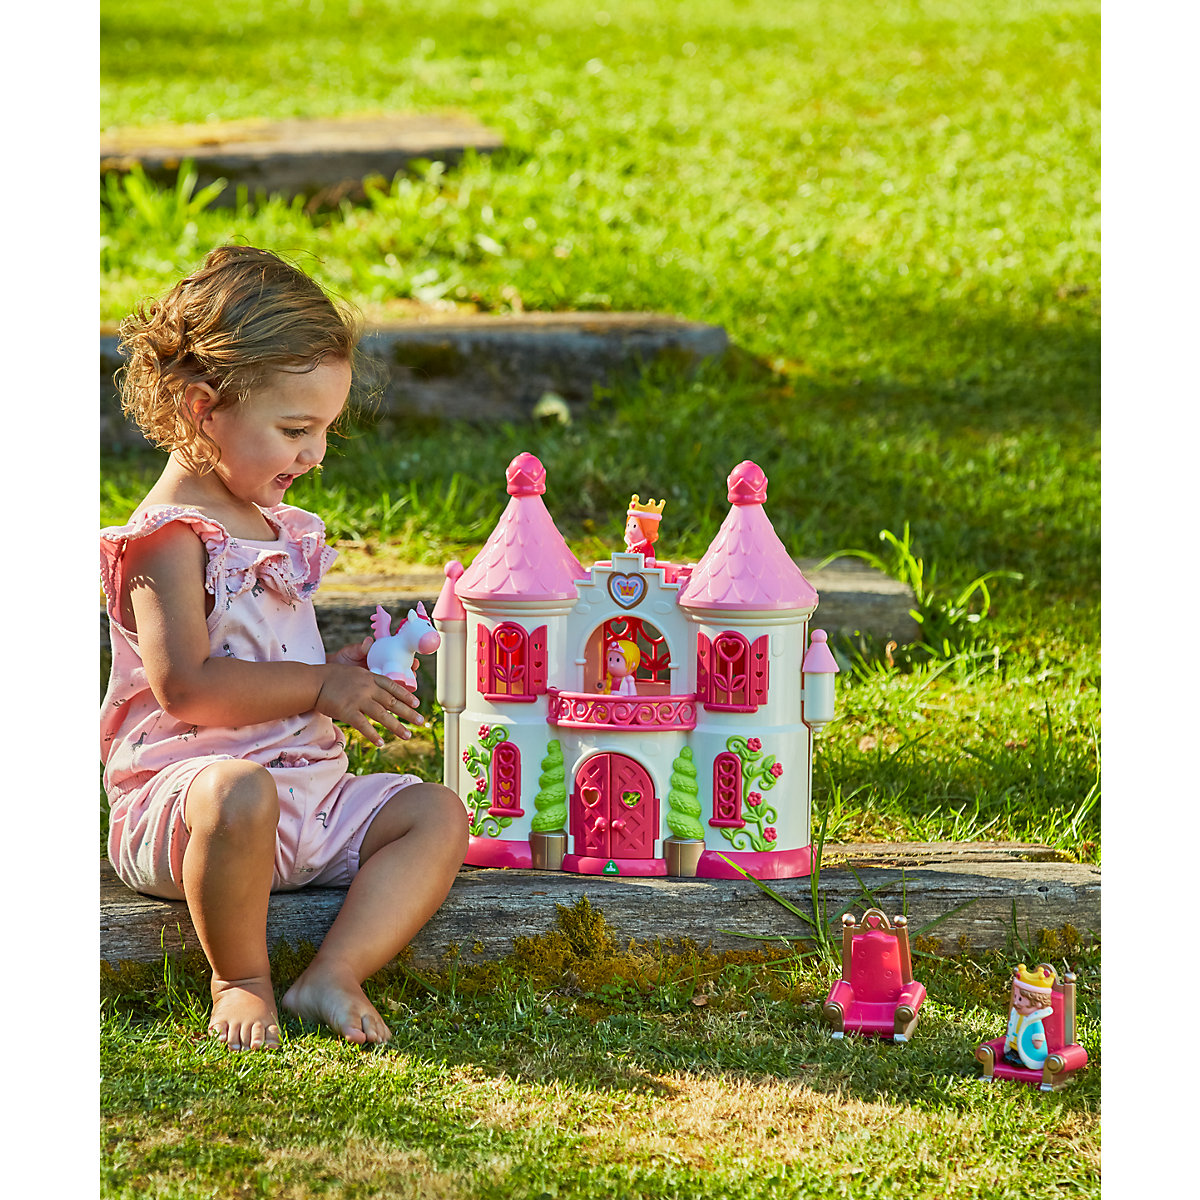 Toys For Boys 18 Months : New elc boys and girls happyland fantasy palace toy from